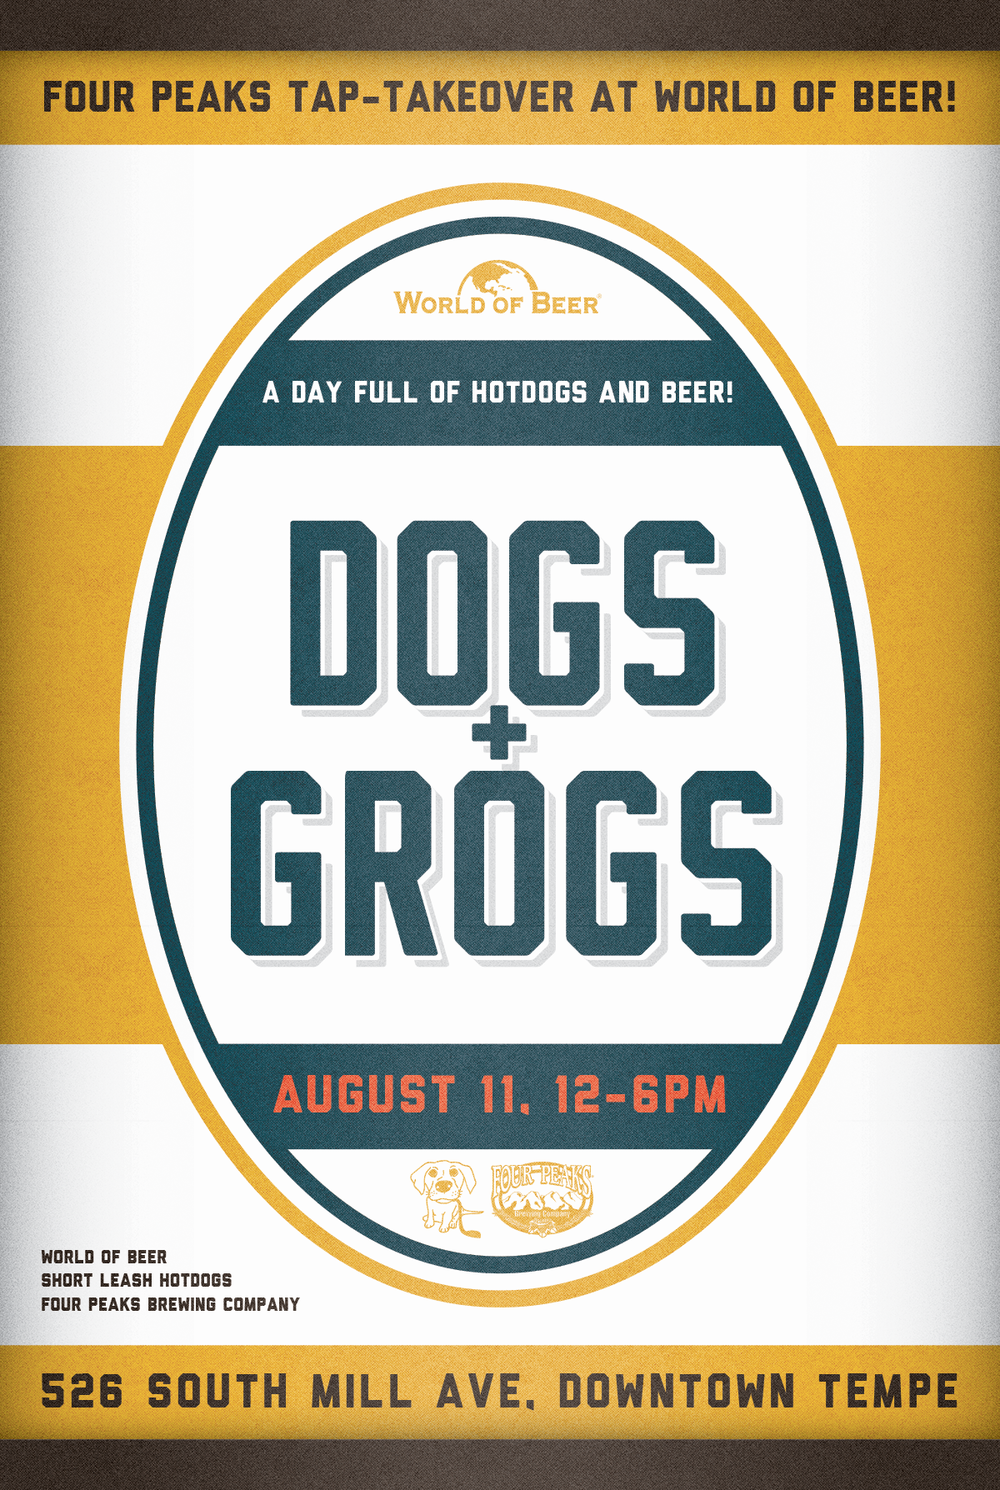 Graphic Design for Four Peaks Brewery, World of Beer, and Short Leash Hotdogs of Phoenix Arizona